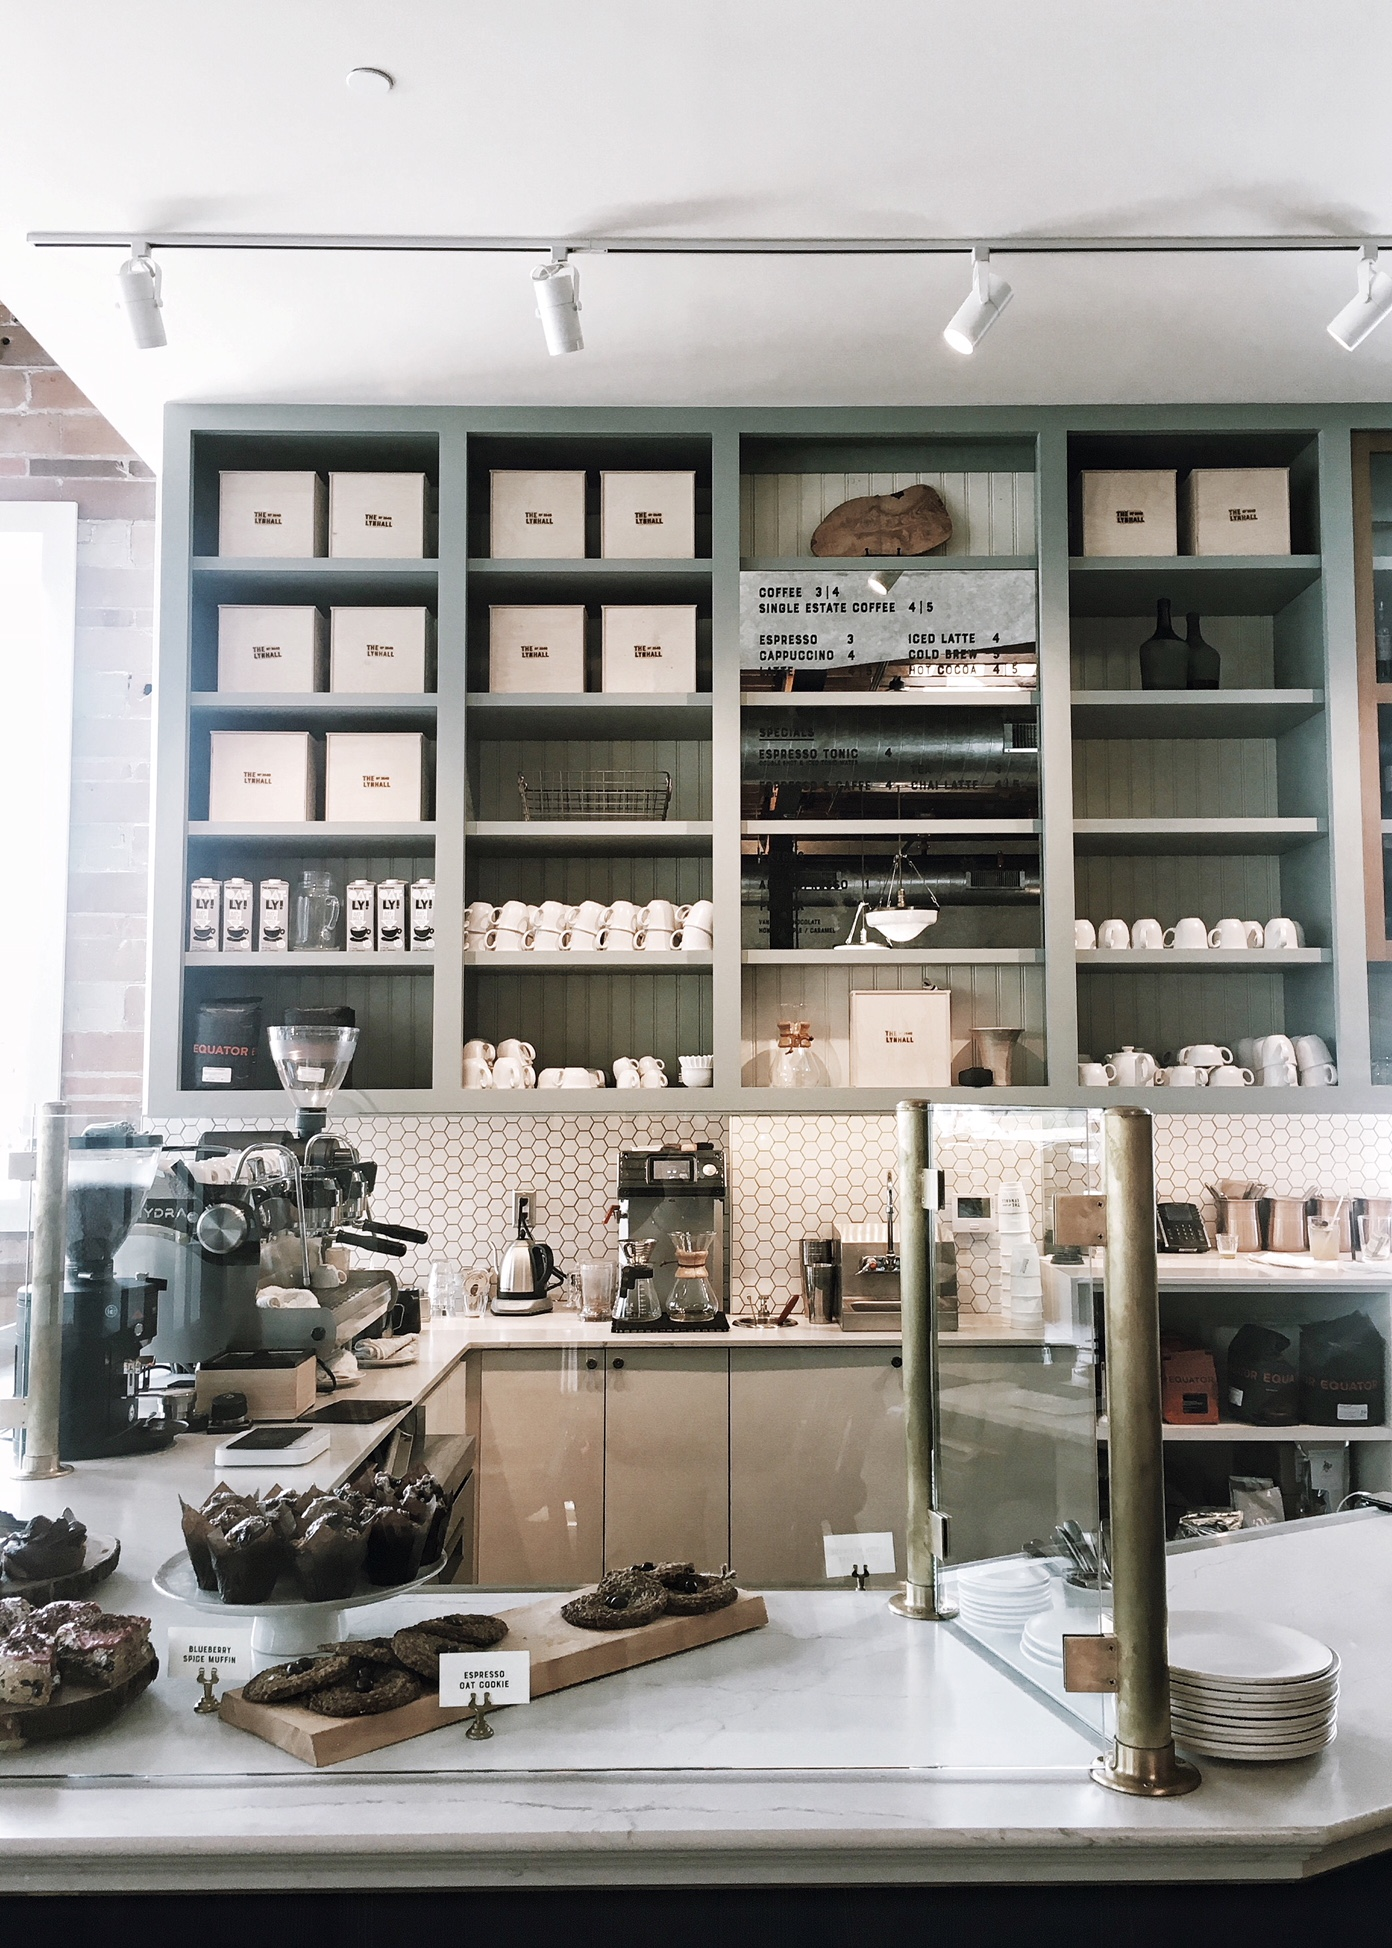 Love their pastry case!